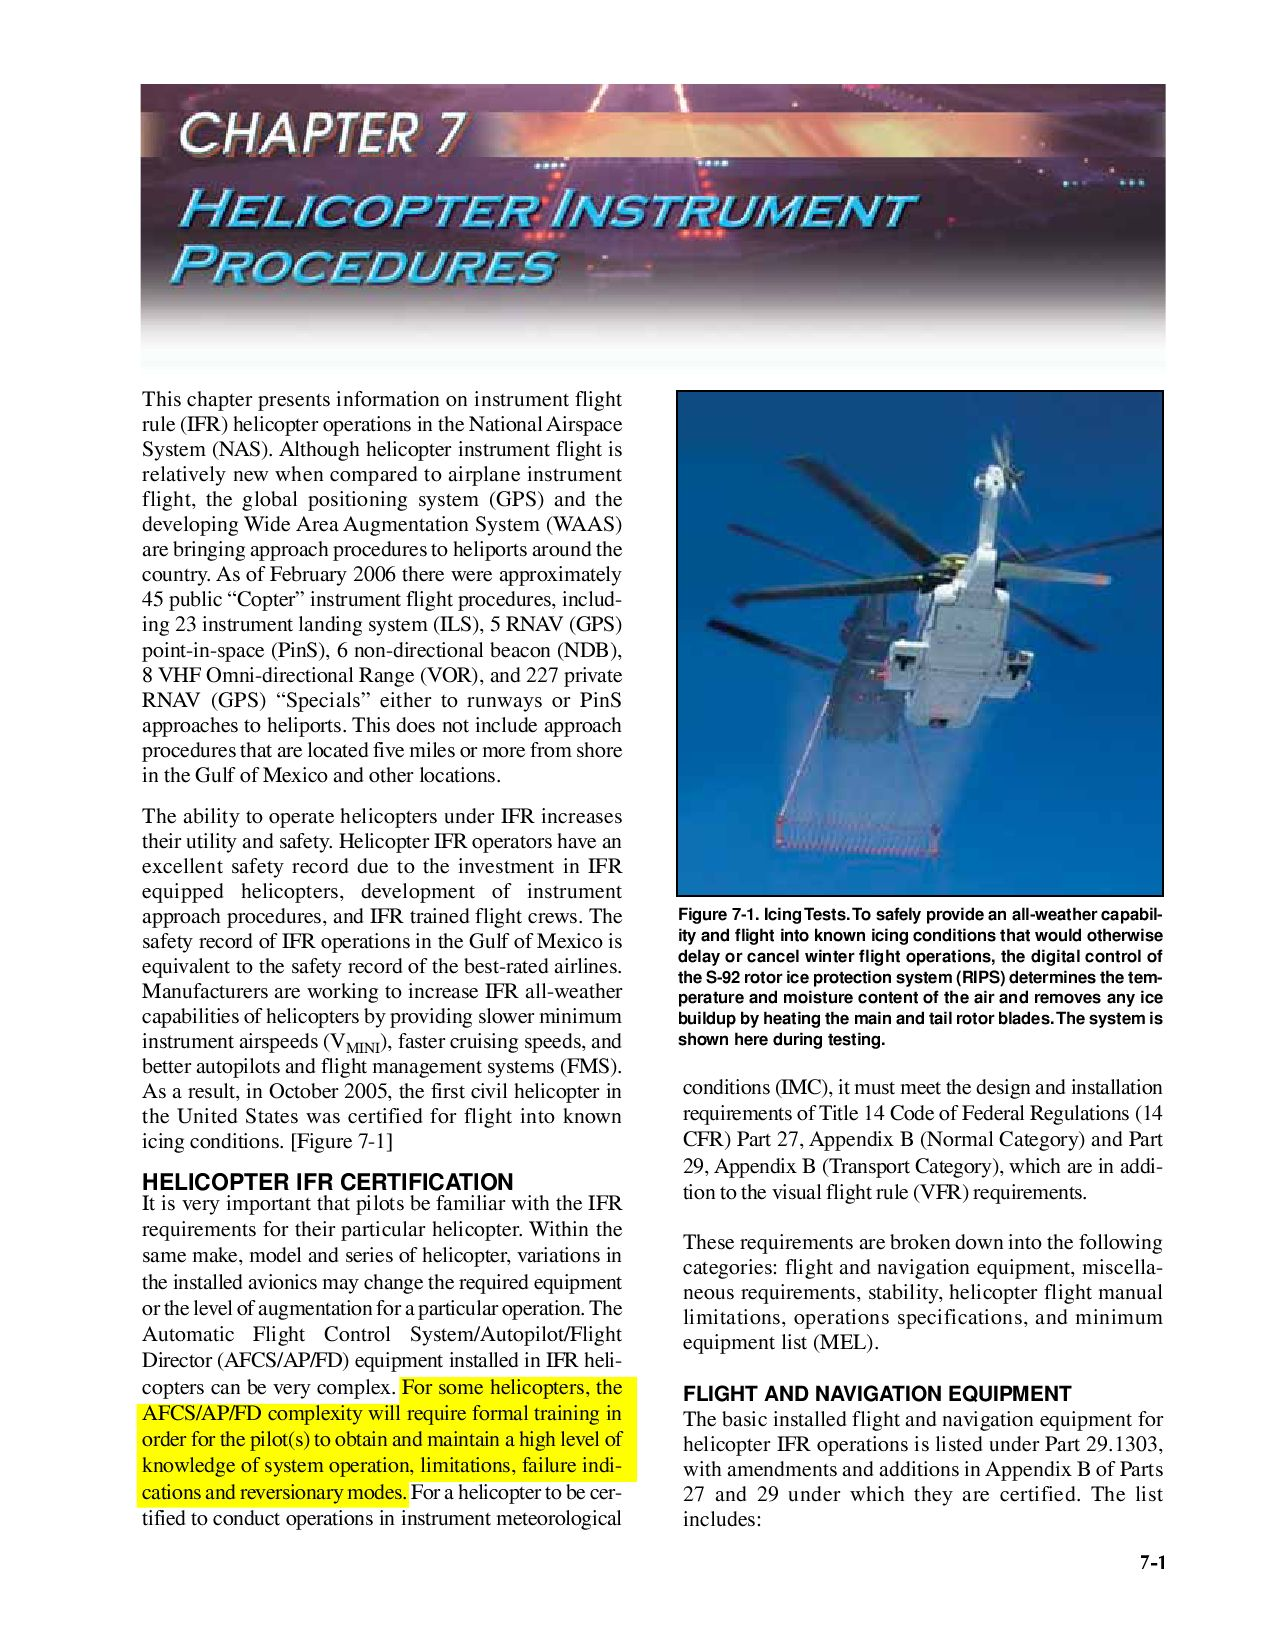 FAA Helicopter Instrument Procedure by Roberto Gomez - issuu